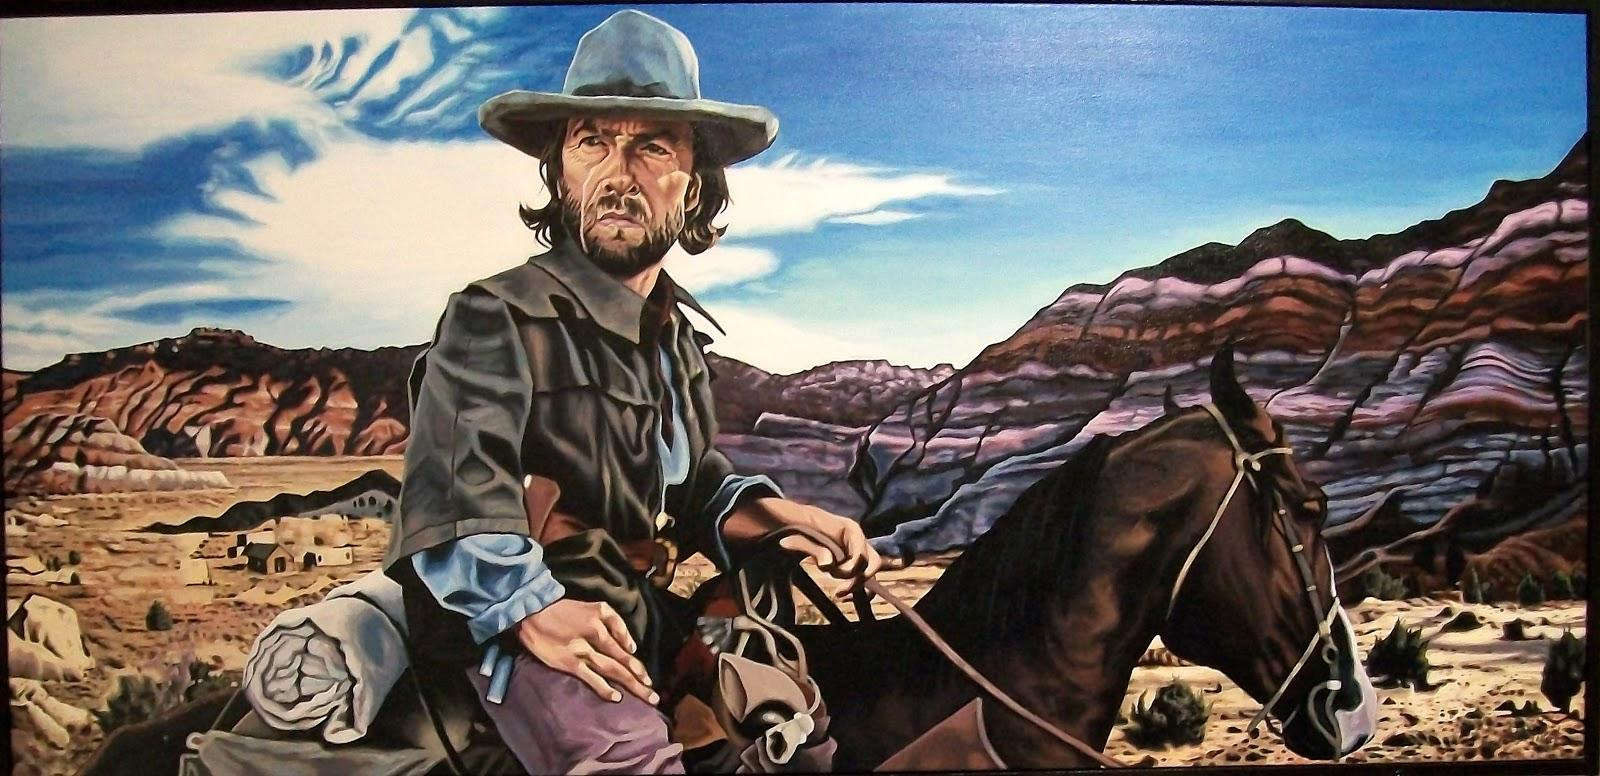 The Outlaw Josey Wales Painting - 0425